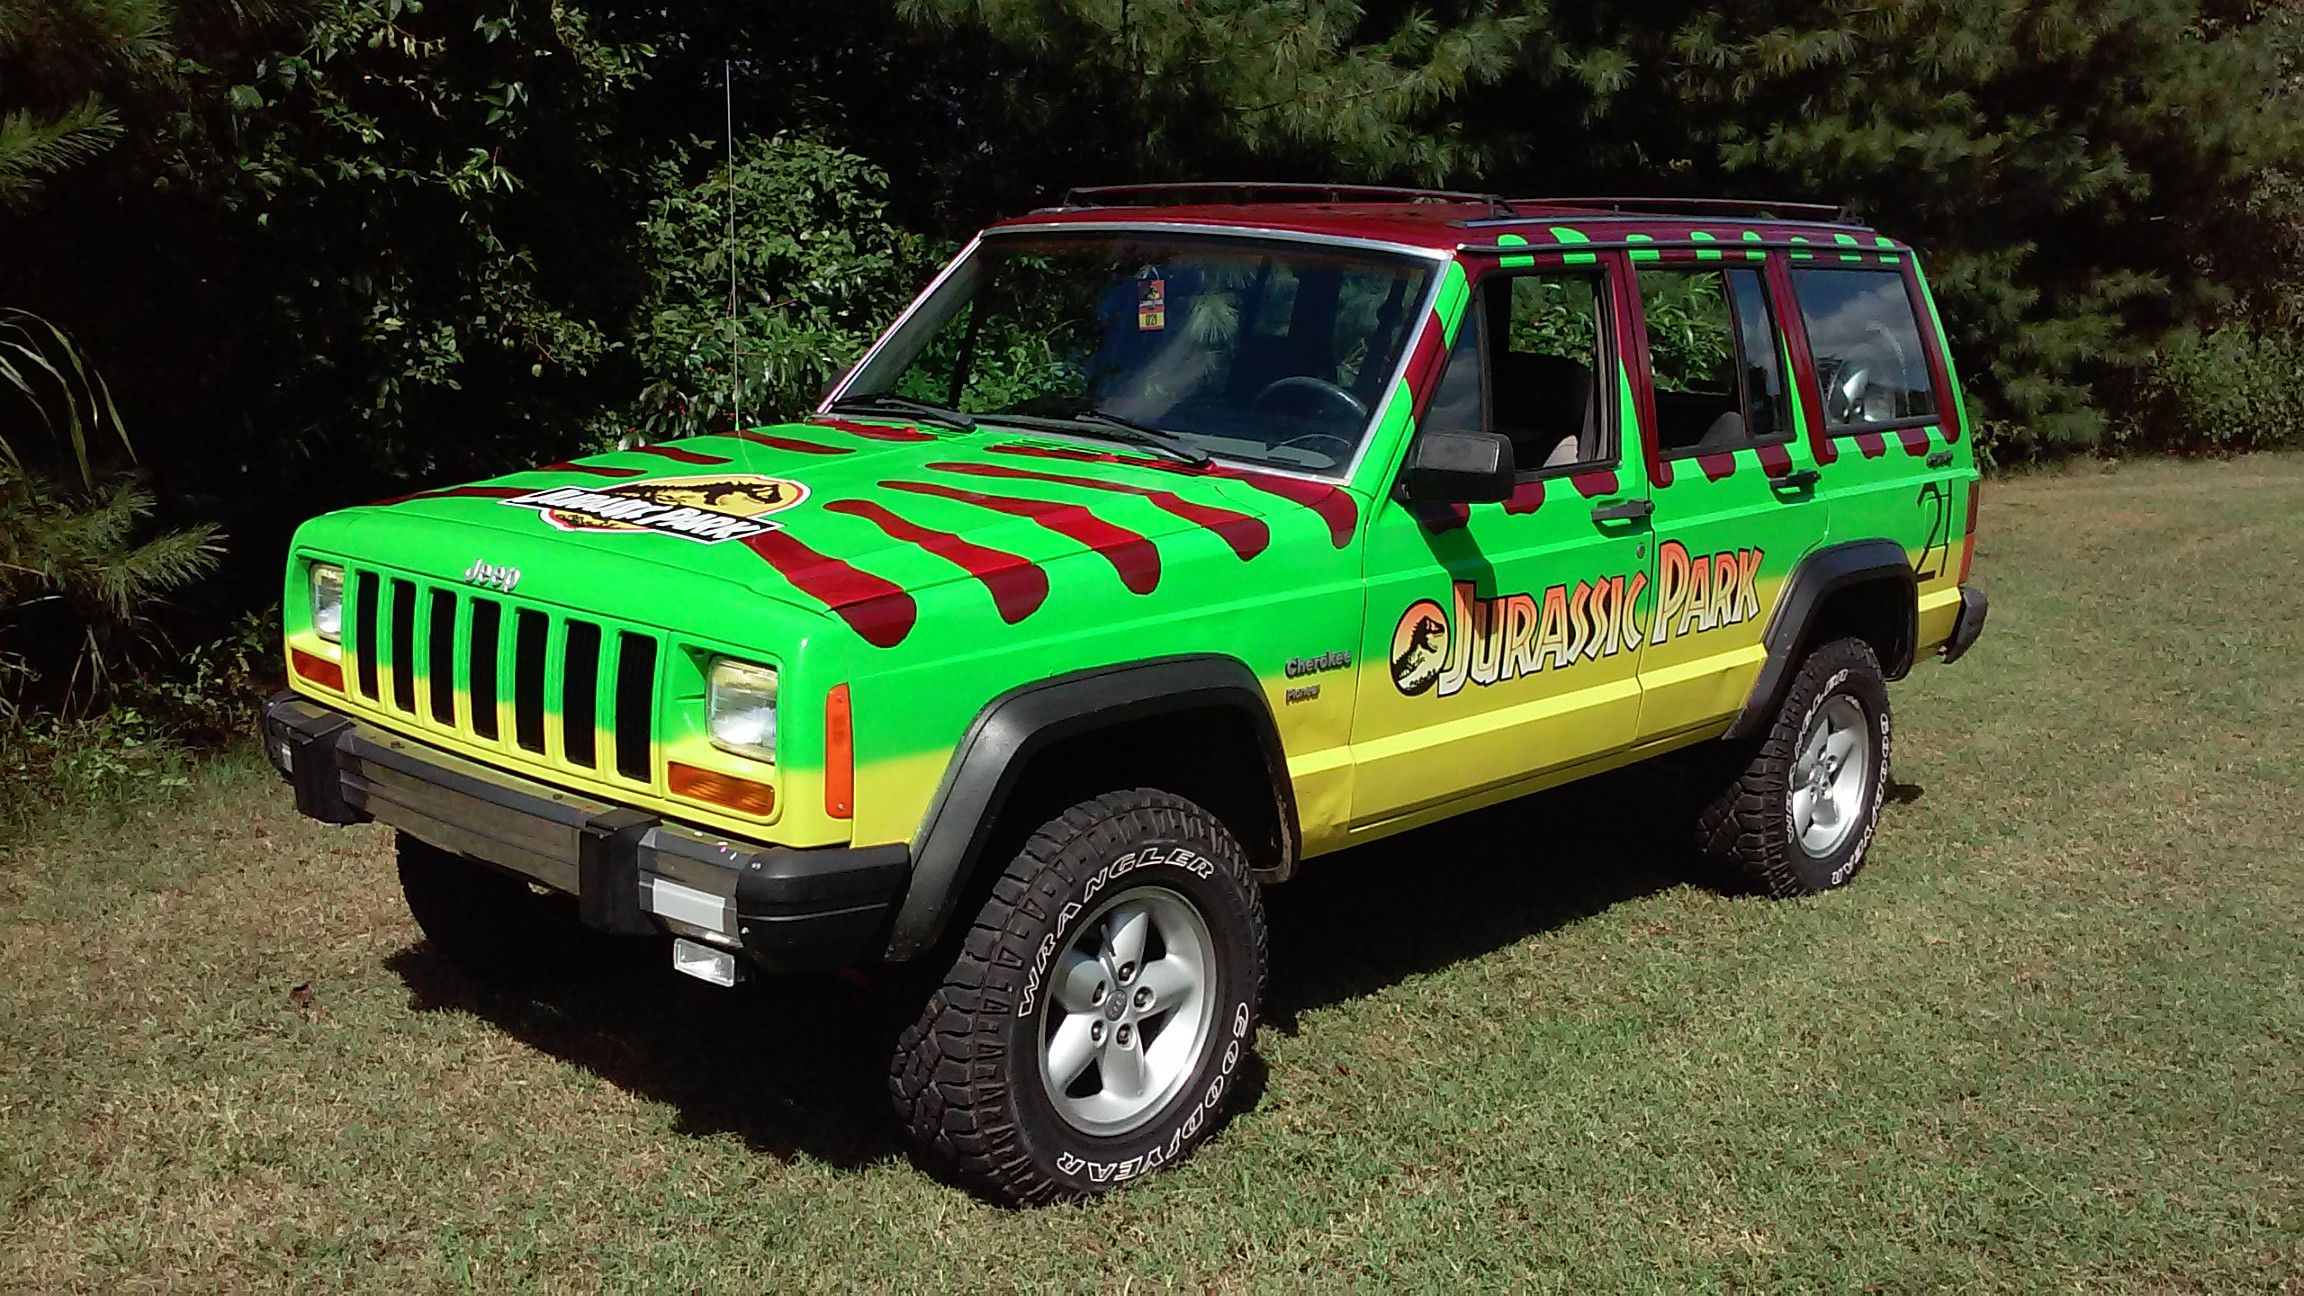 Pin By Stu Paasche On Jeep Cherokee Jurassic Park Jeep Jeep Xj